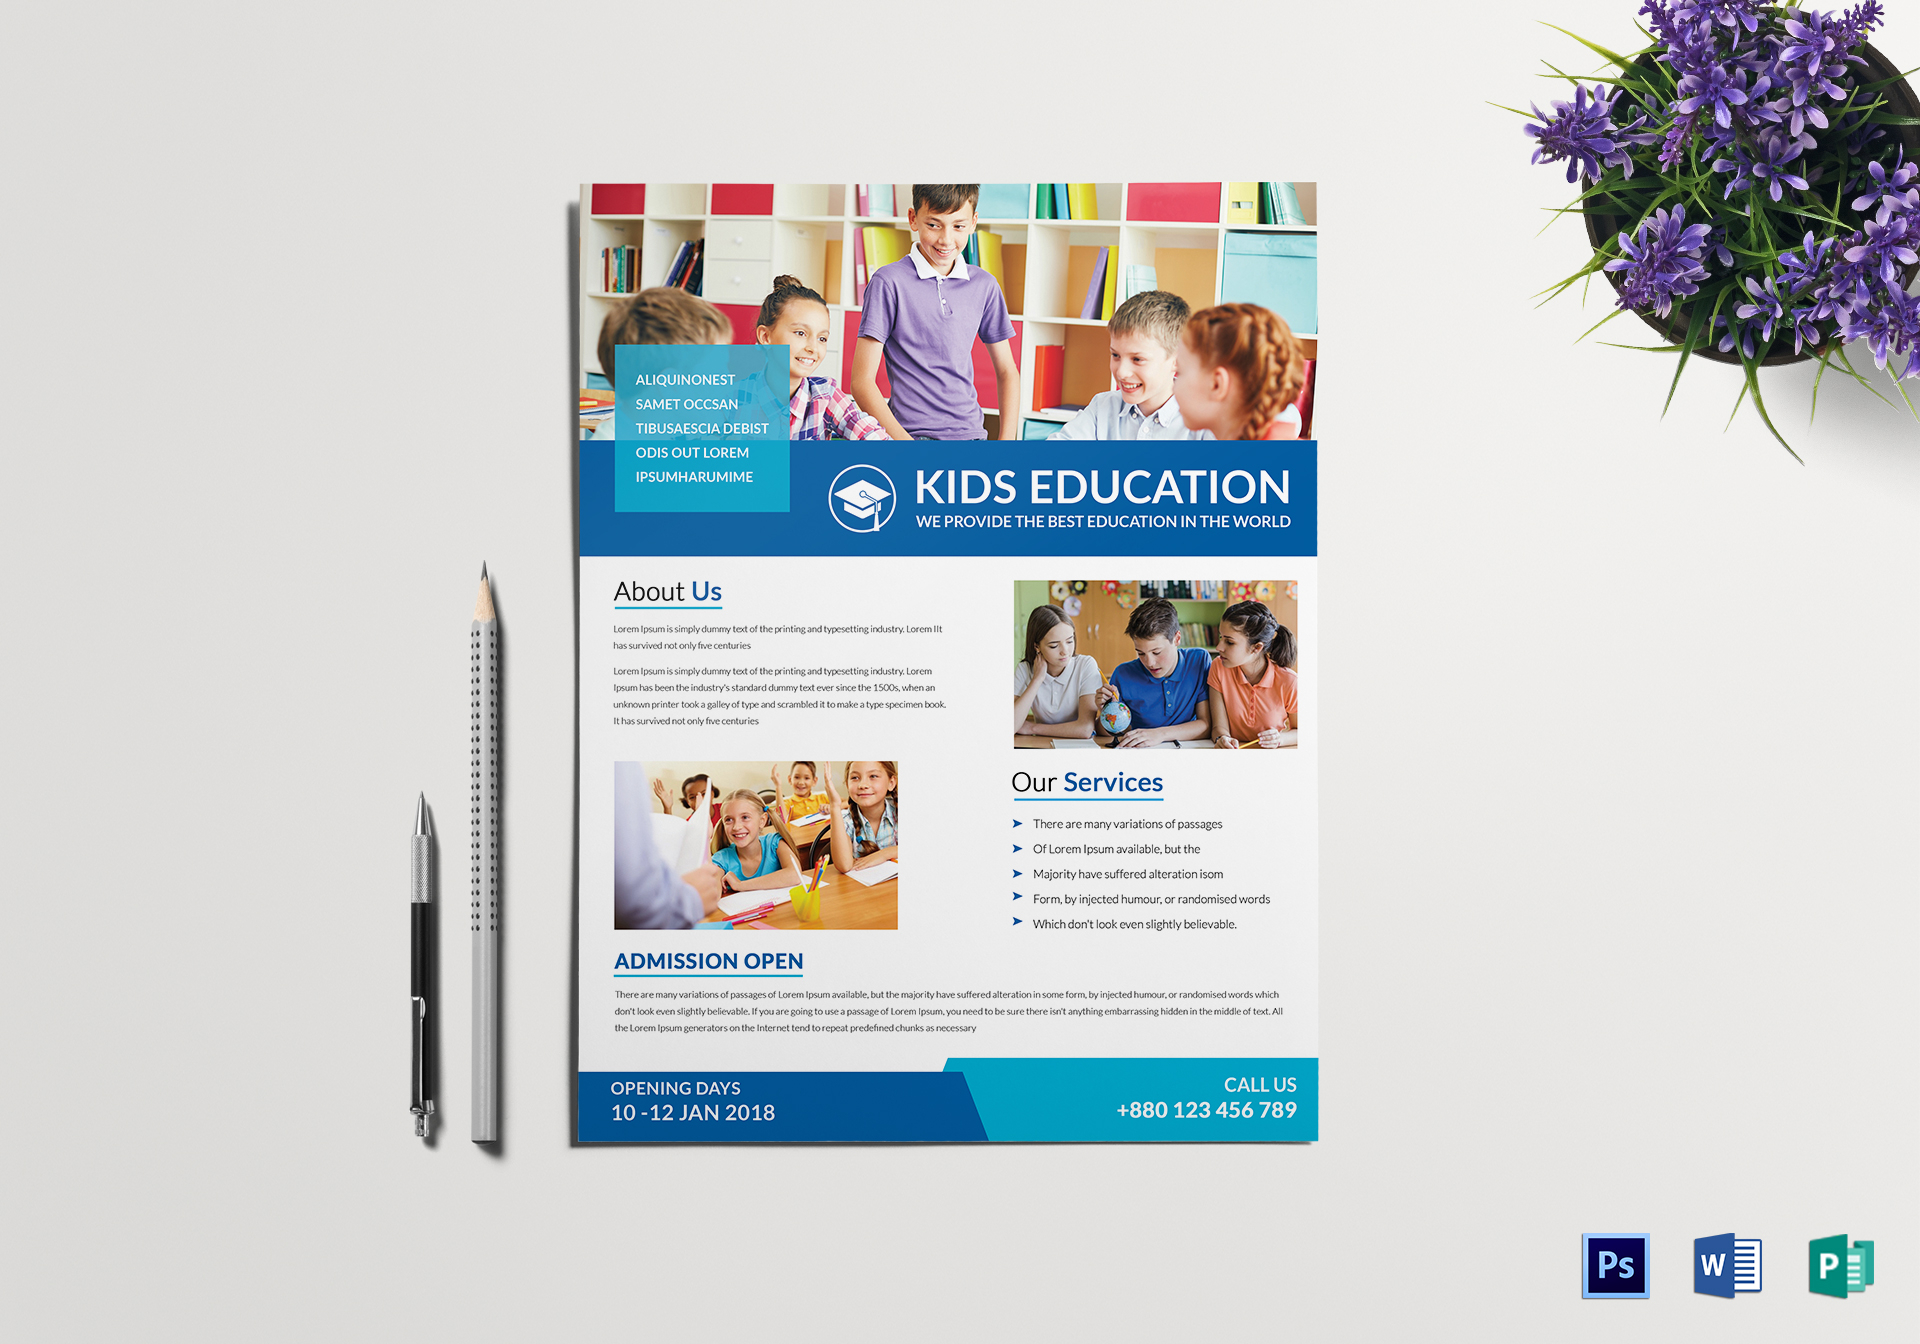 30+ School Flyers Templates - PSD, AI, Pages, Word | Free & Premium